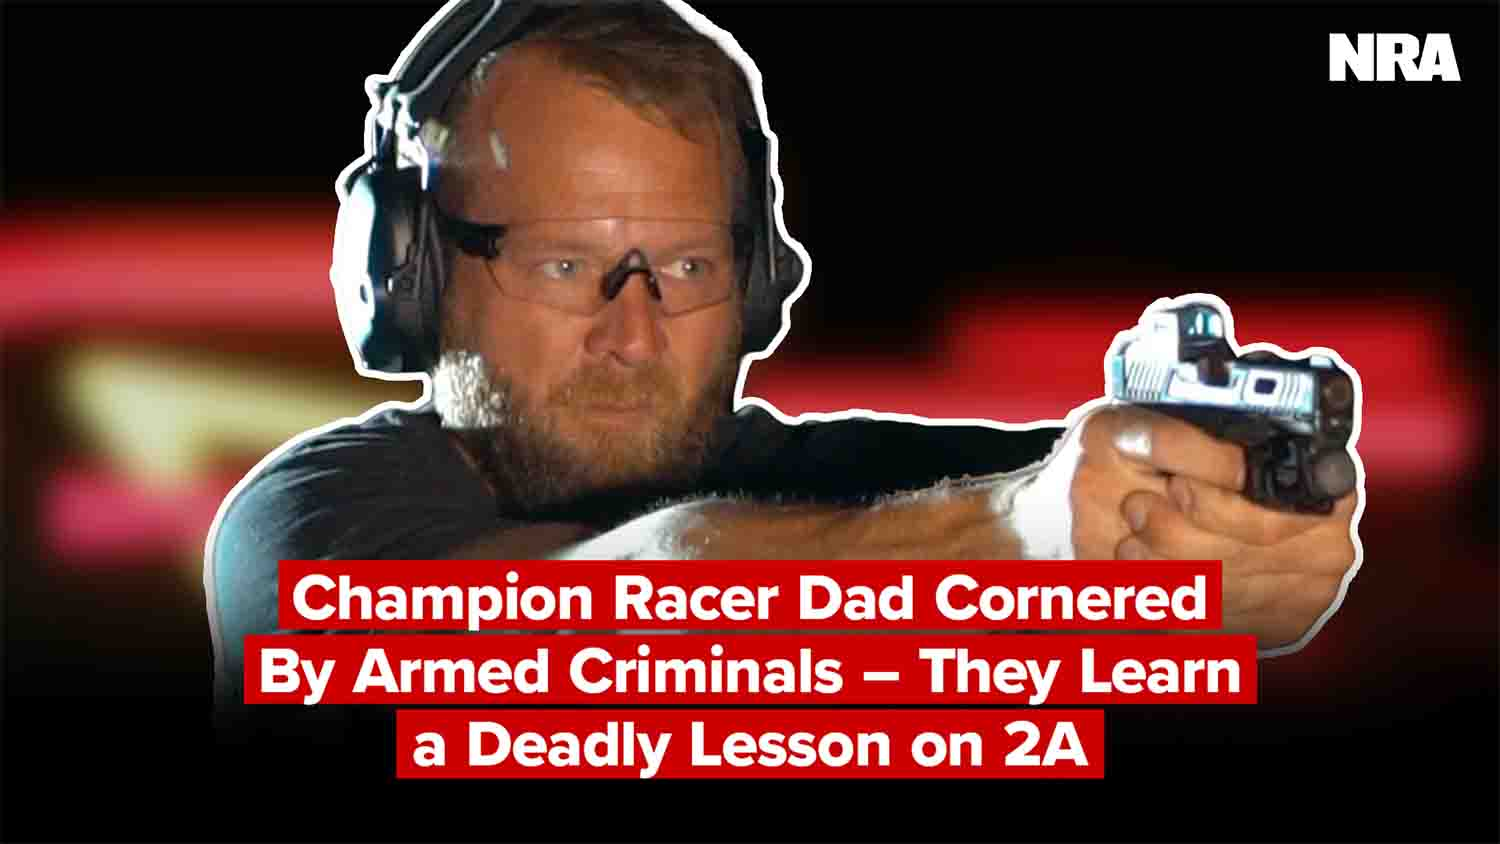 BJ Baldwin: Champion Racer Dad Cornered By Armed Criminals – They Learn a Deadly Lesson on 2A